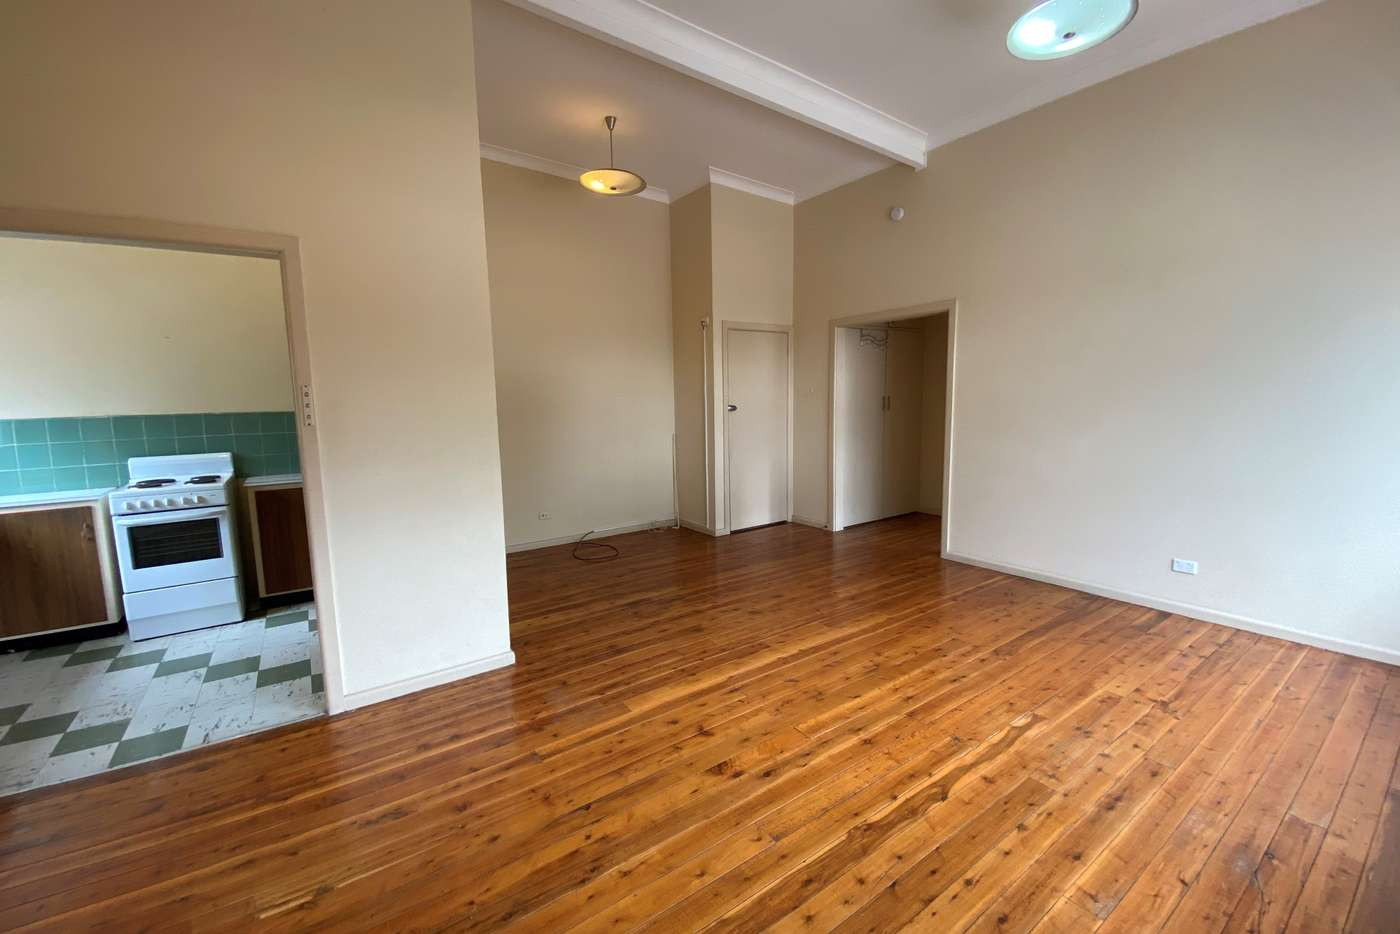 Main view of Homely apartment listing, 1/72 Yarrara Road, Pennant Hills NSW 2120